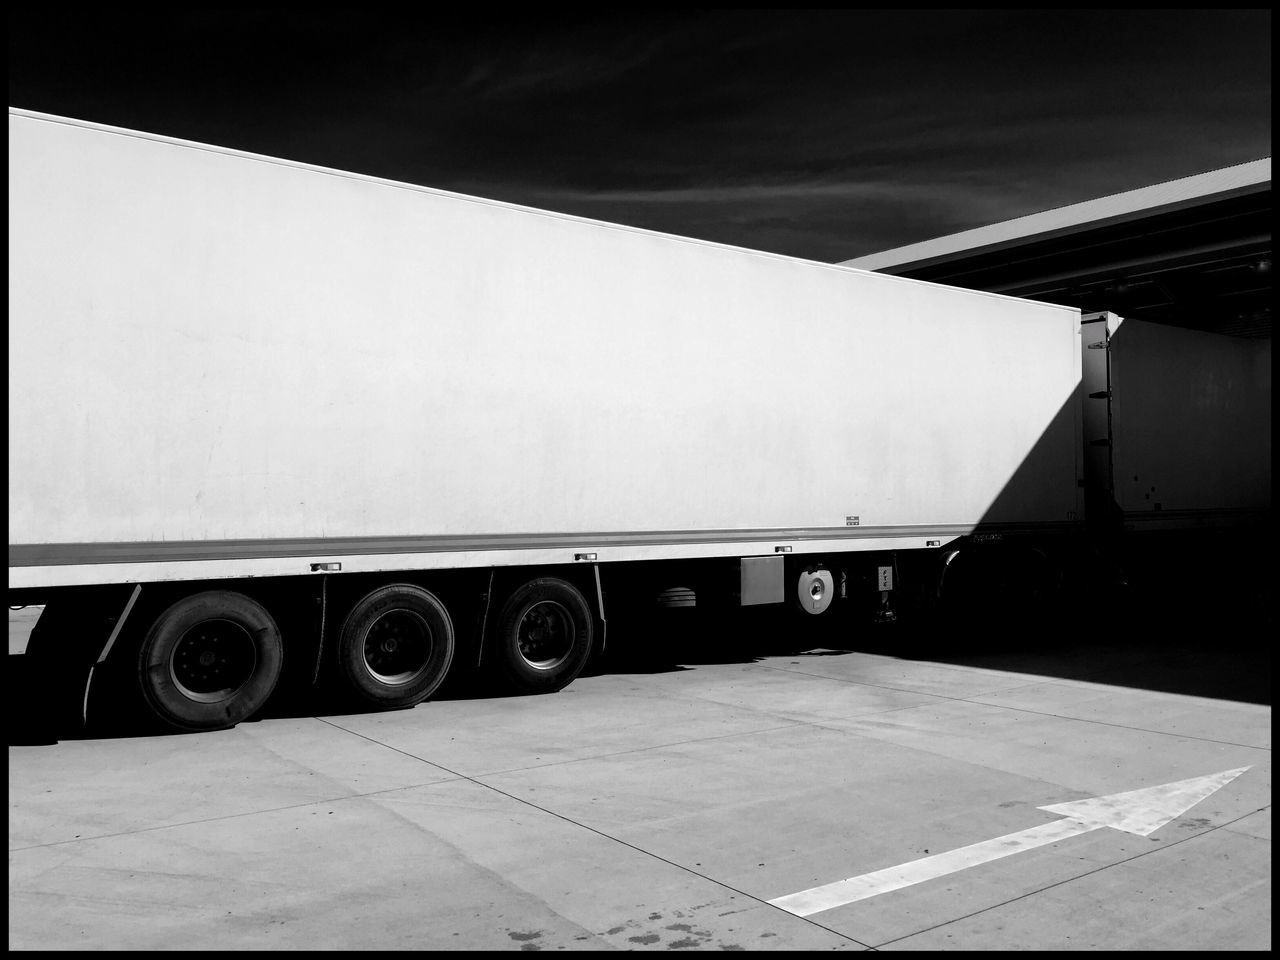 Transportation Industry No People Day Outdoors Monochrome Photography Urban Geometry Streetphotography_bw